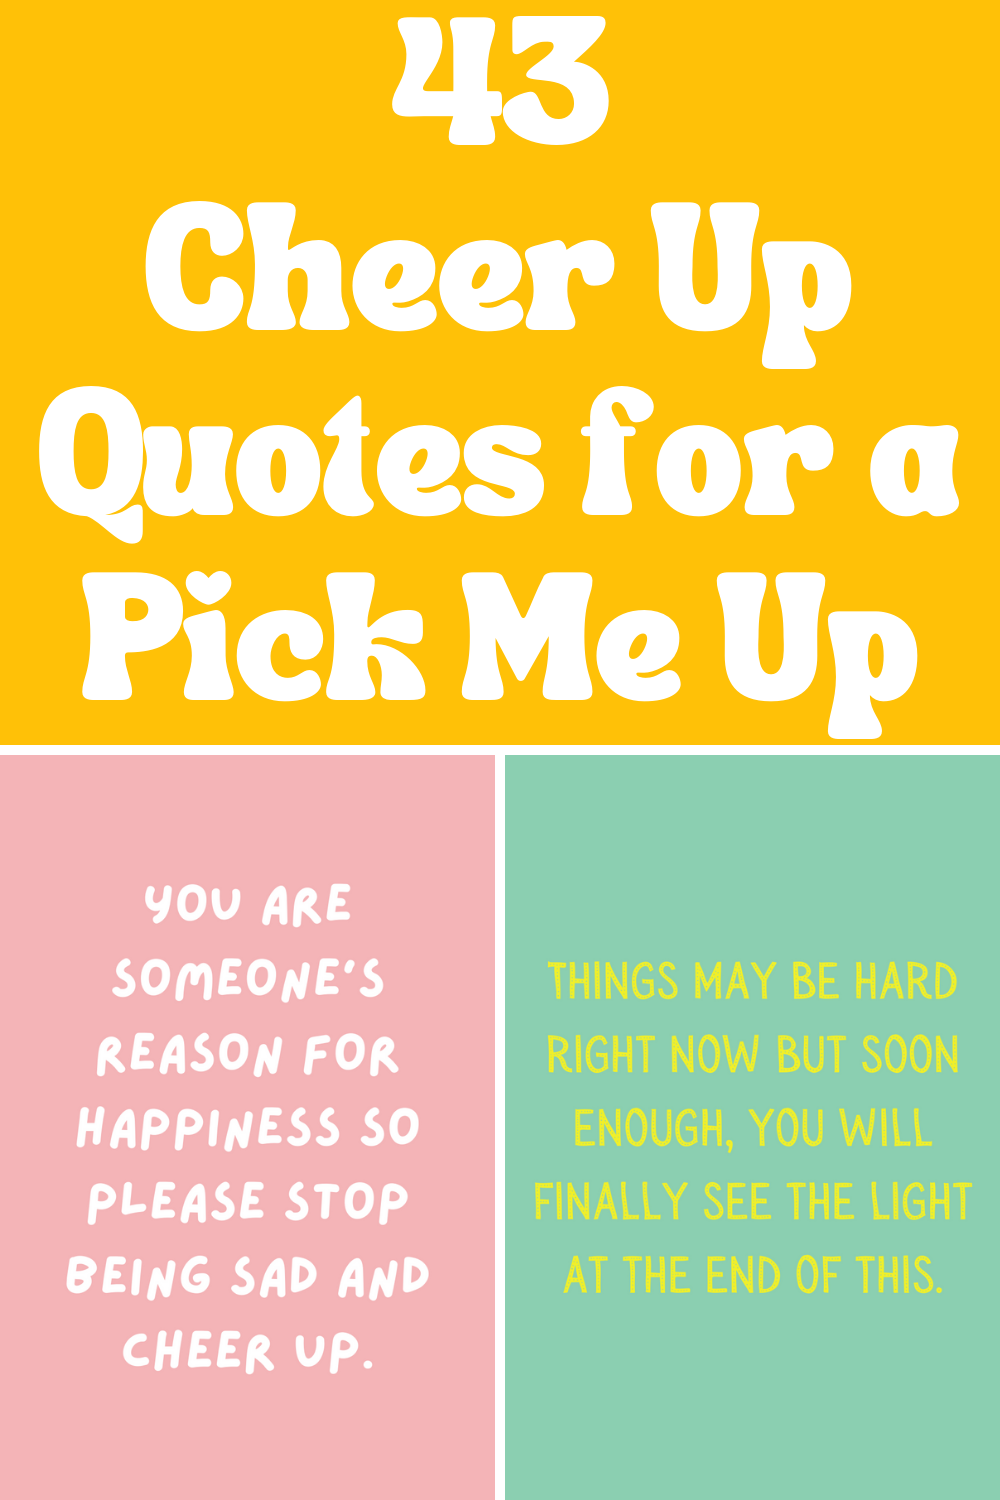 43 Cheer up quotes for helping someone